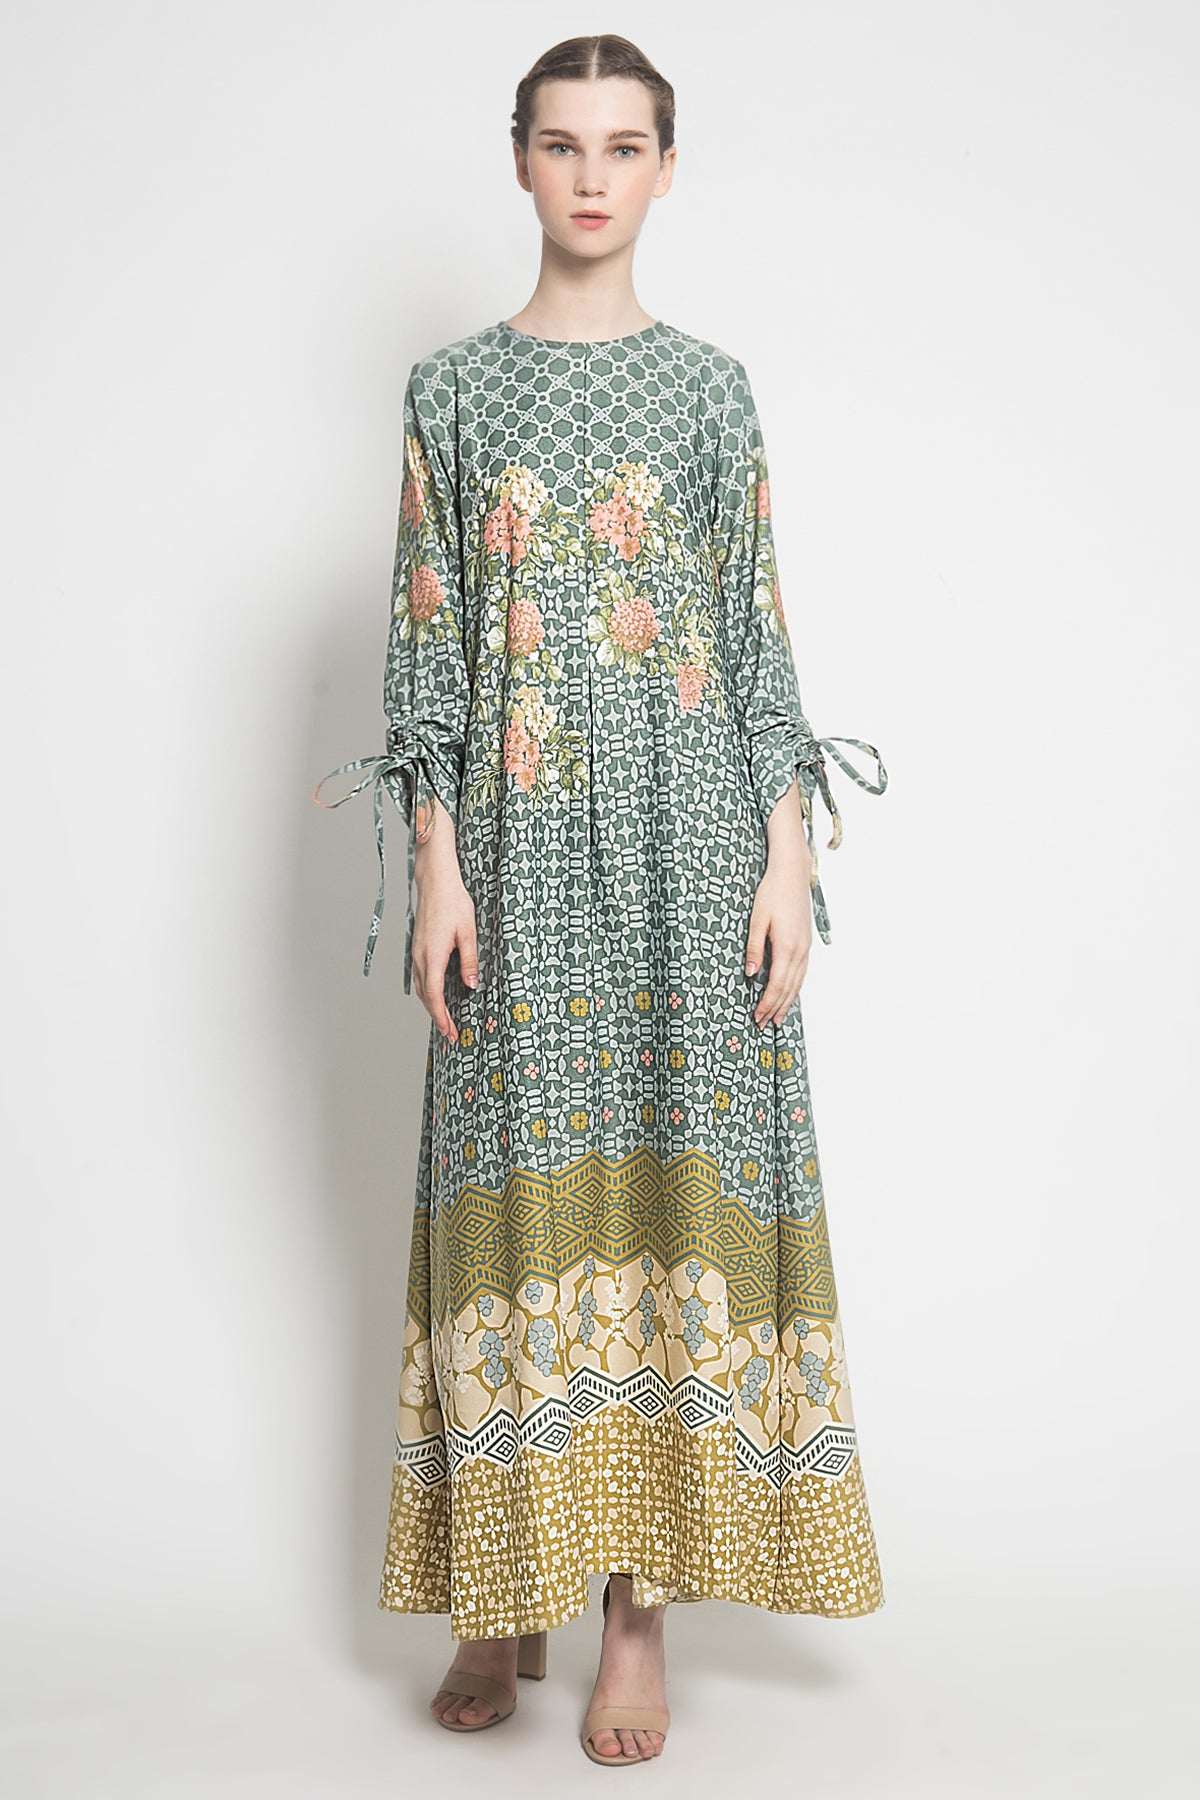 Degrassi Maxi Dress in Tosca